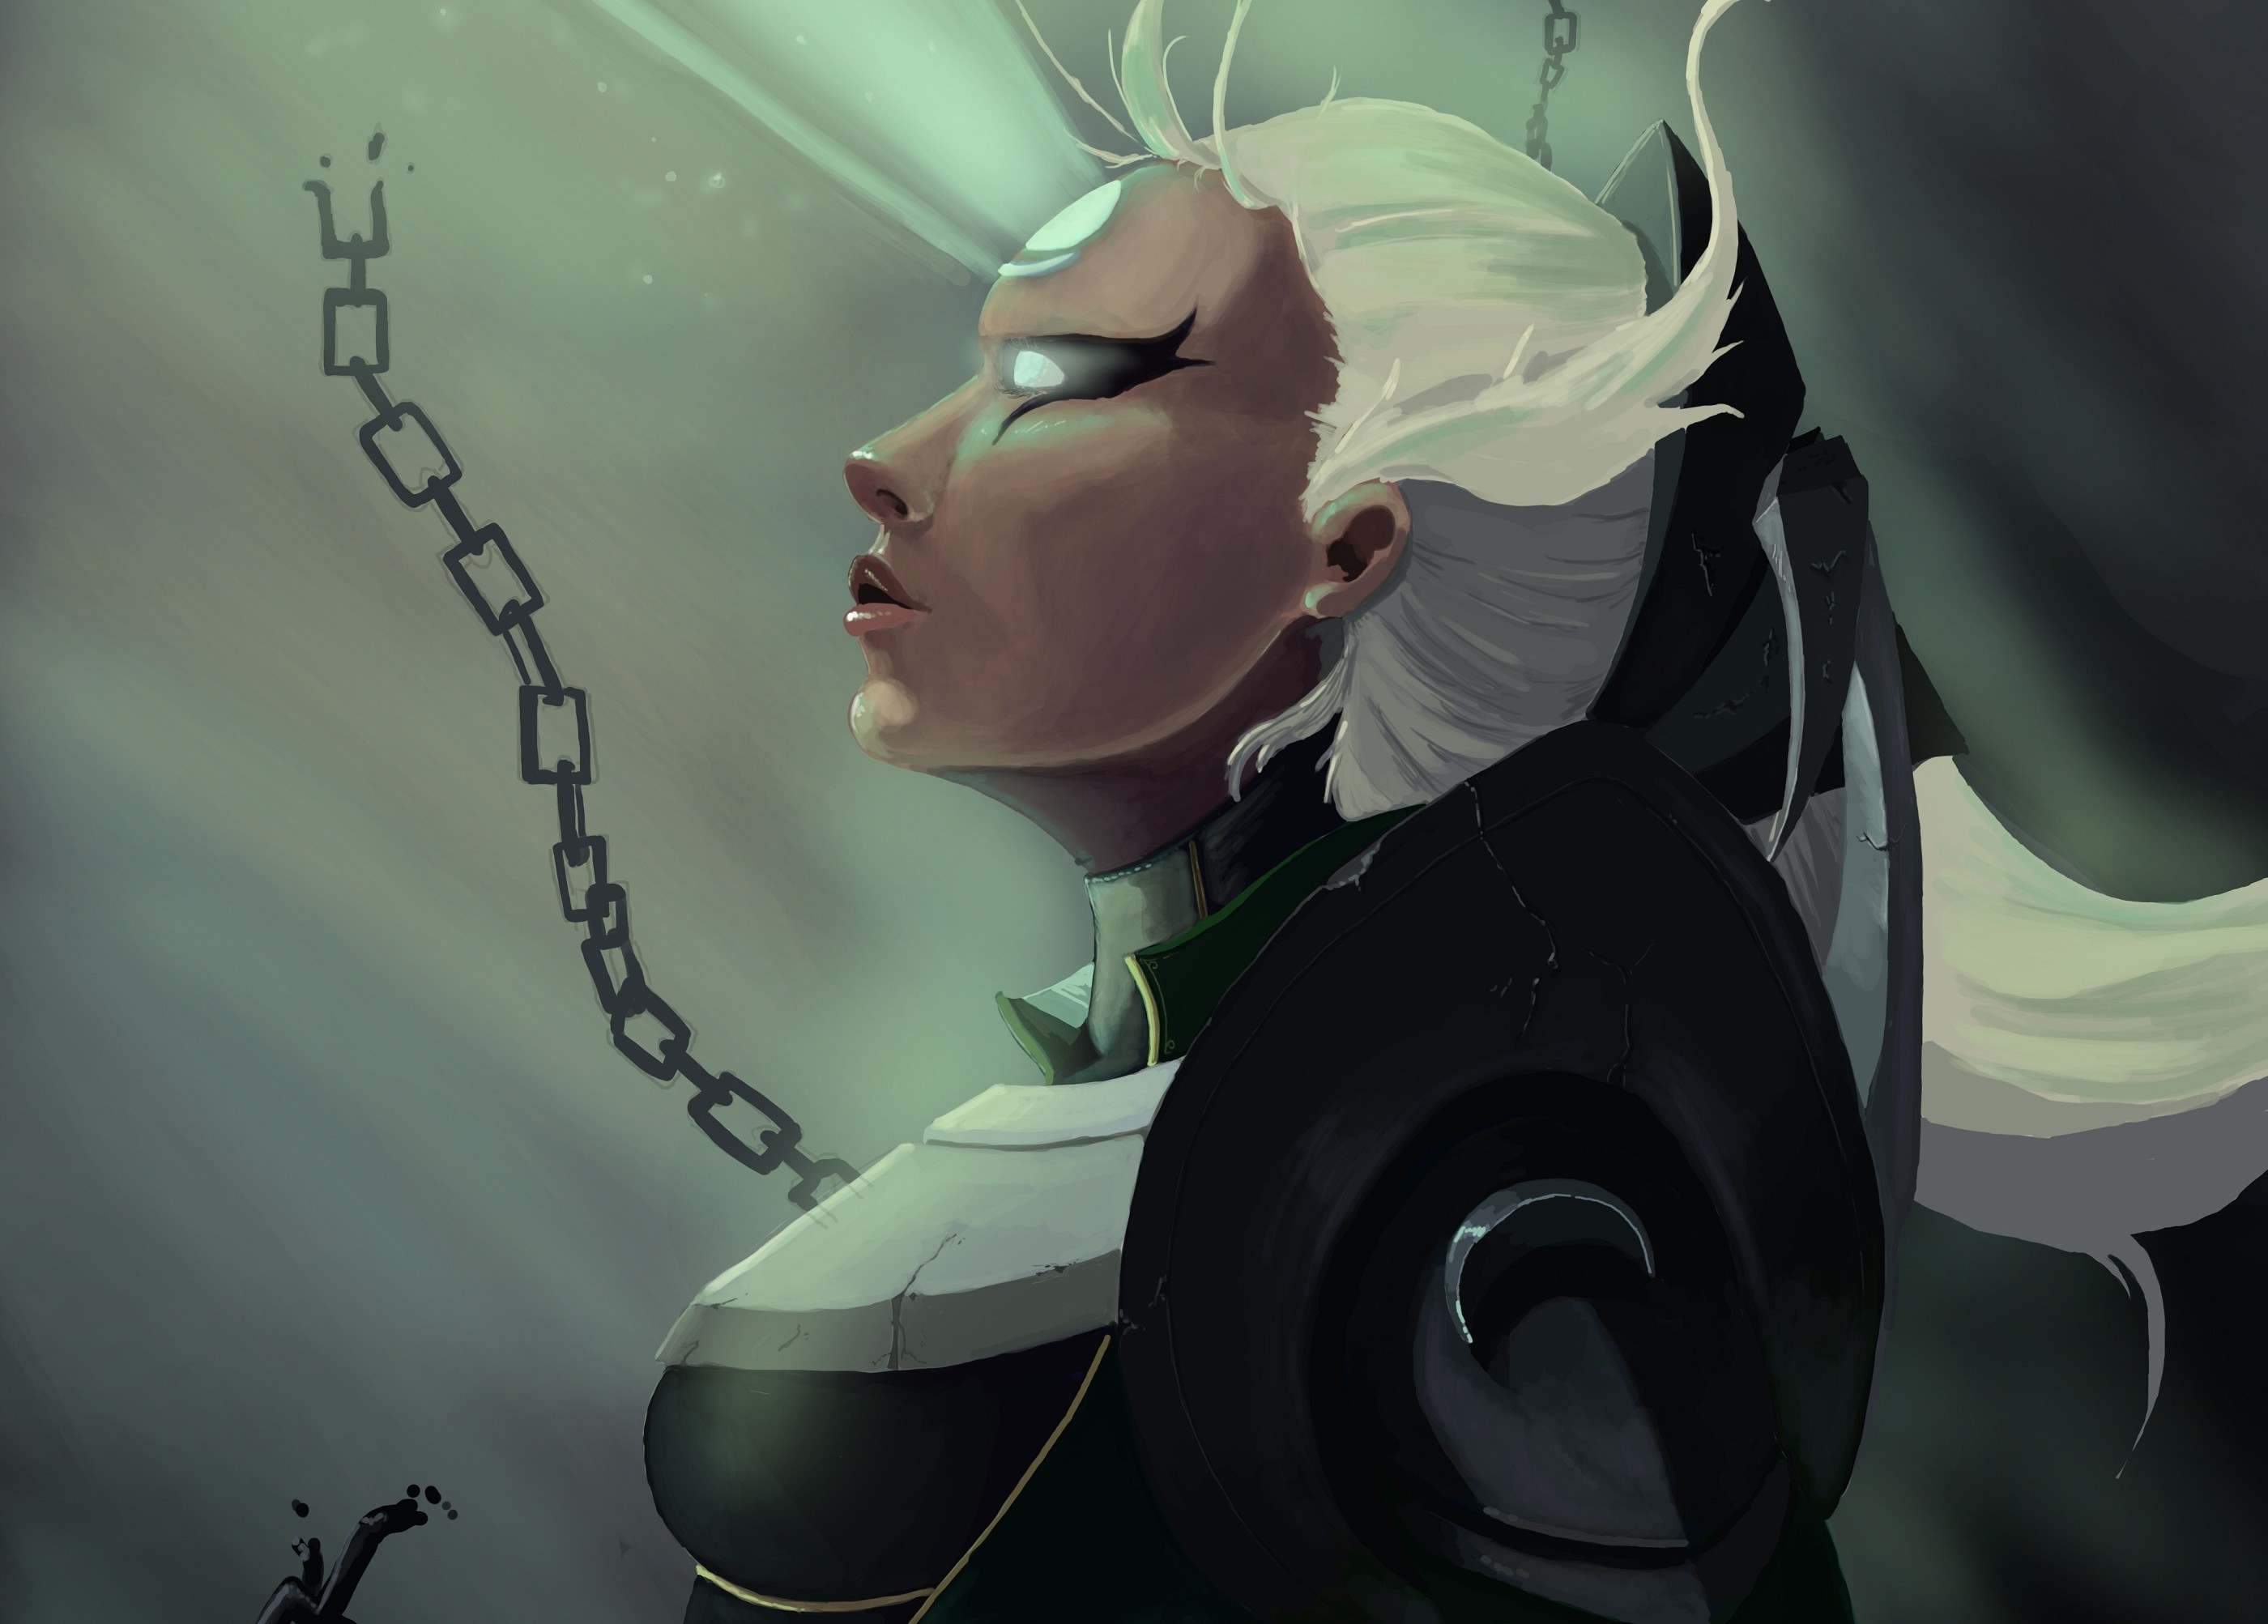 Wallpaper Of League Of Legends Diana Background Hd Image